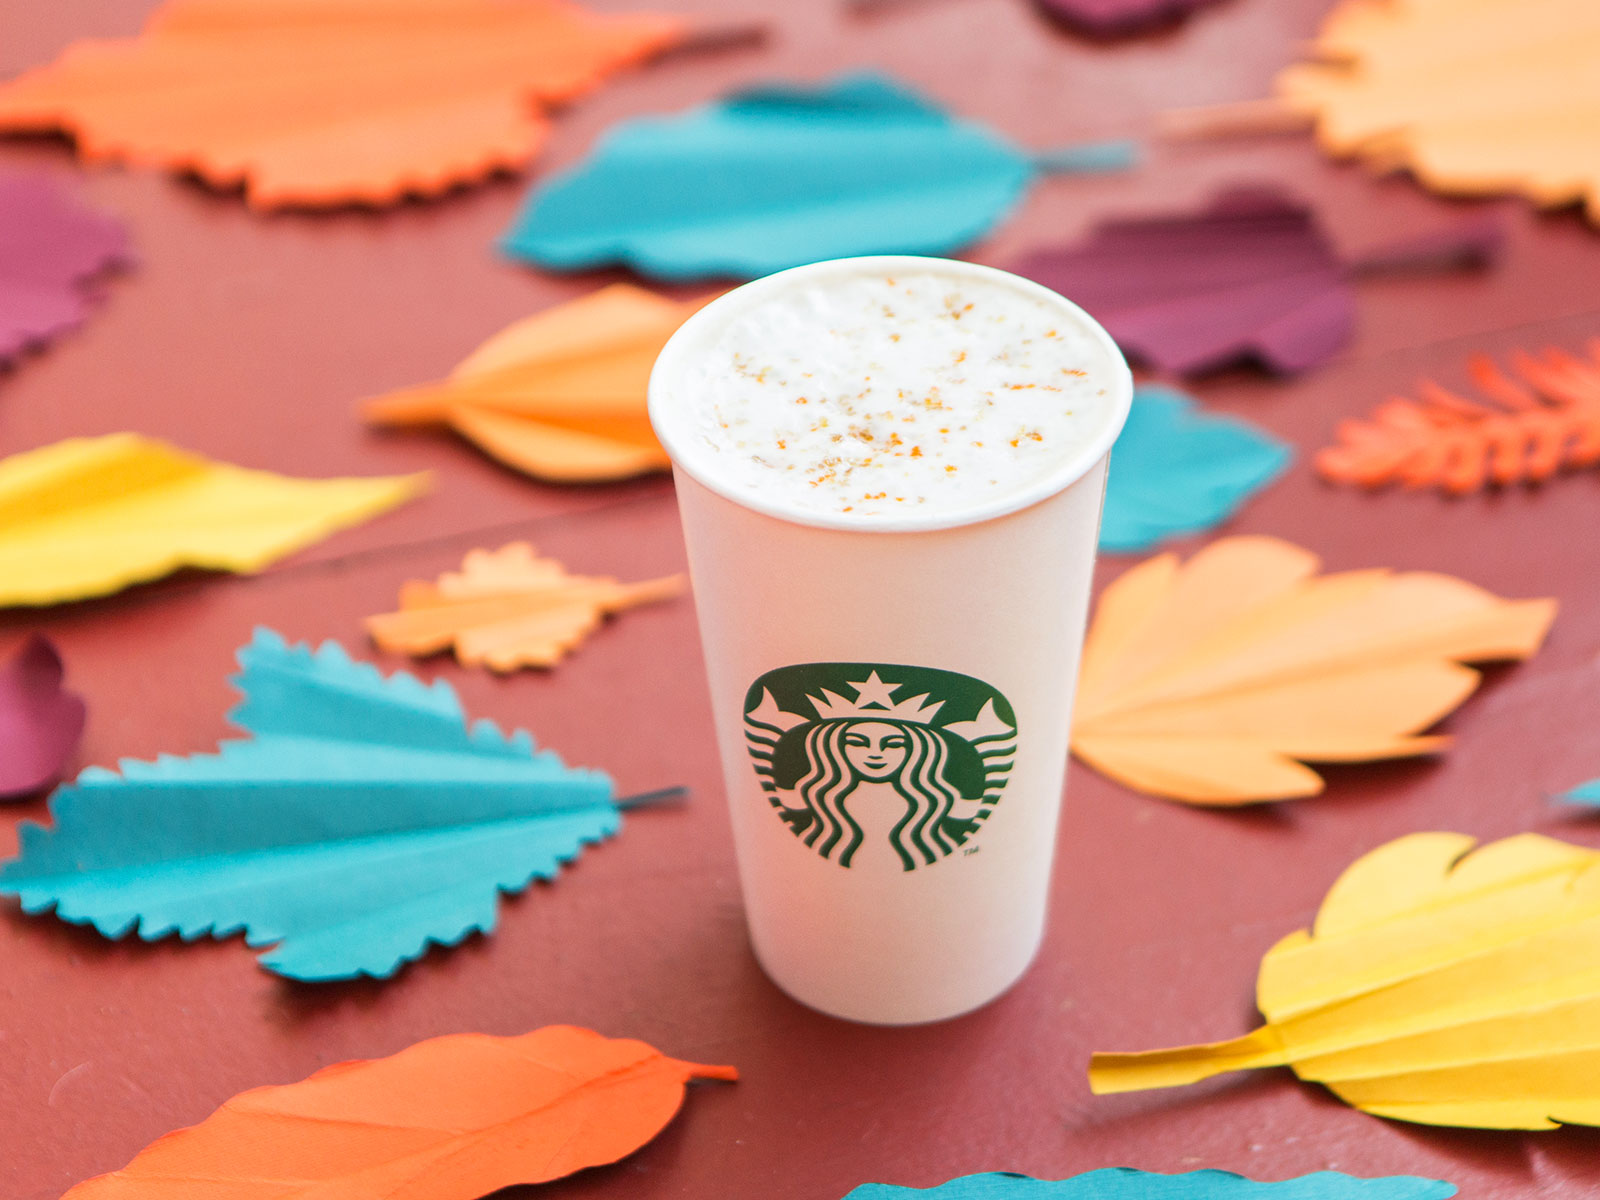 Starbucks introduces new fall flavor with the Maple Pecan Latte